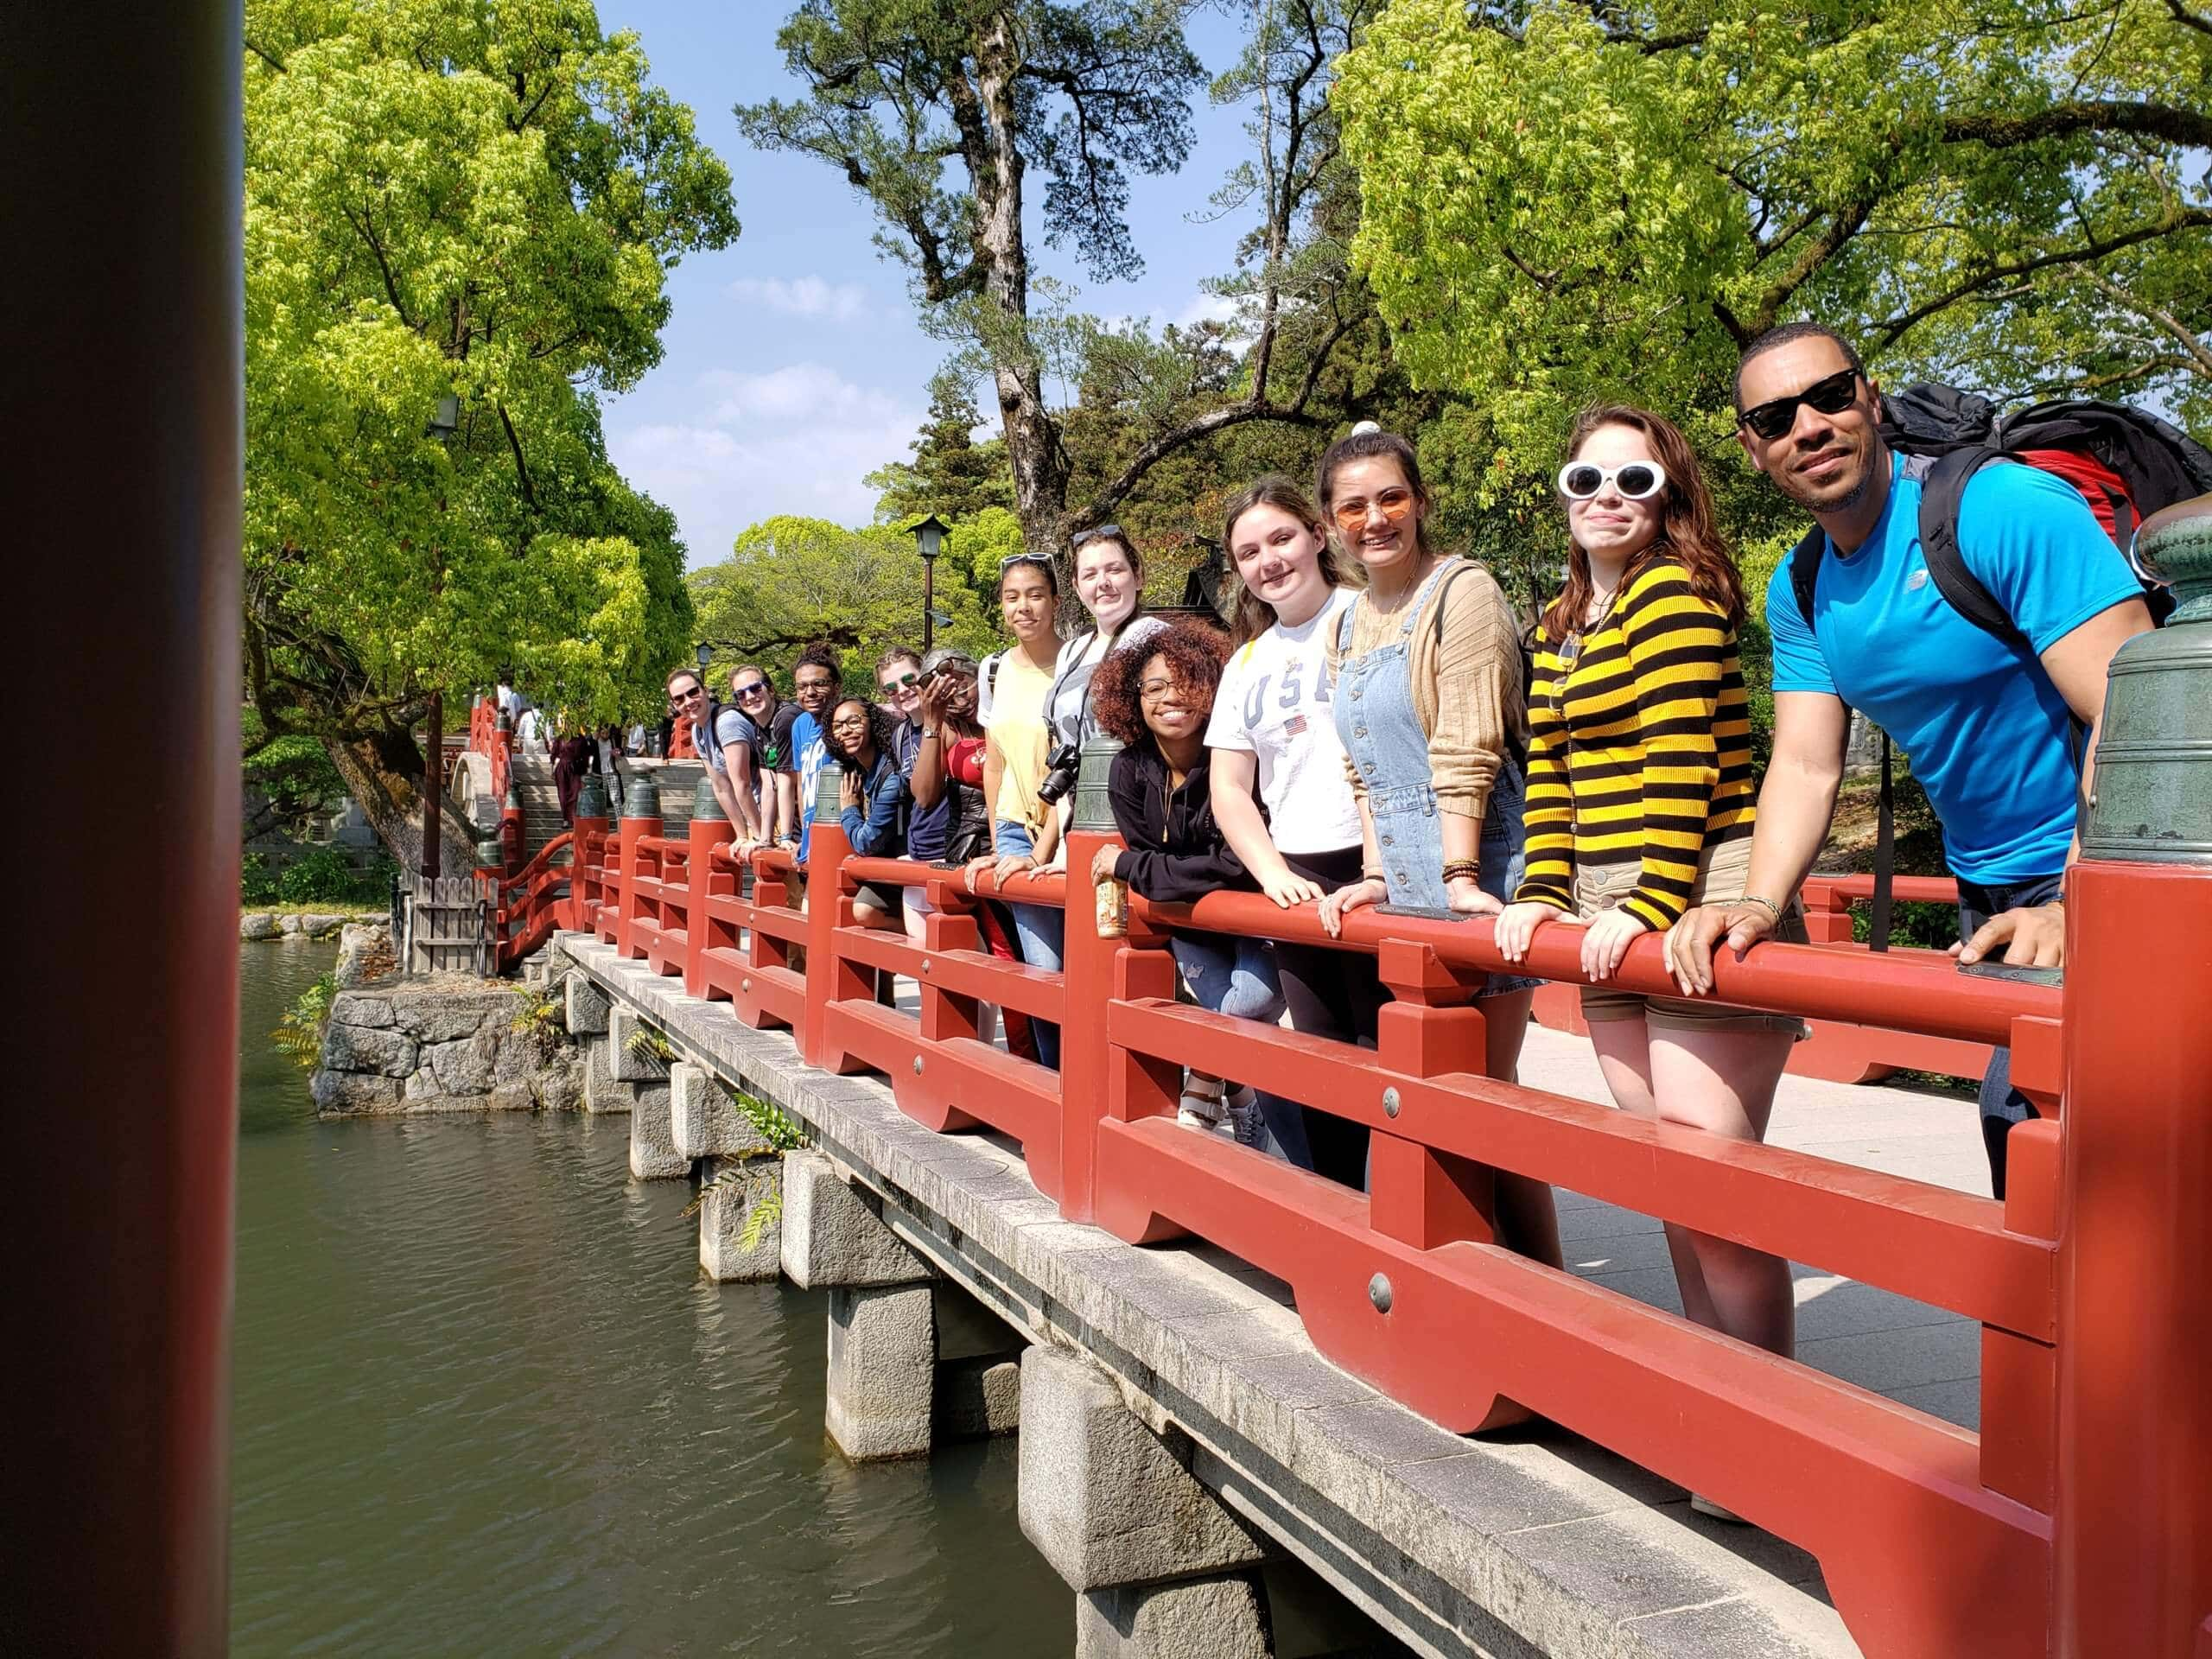 Students smiling on bridge in Japan